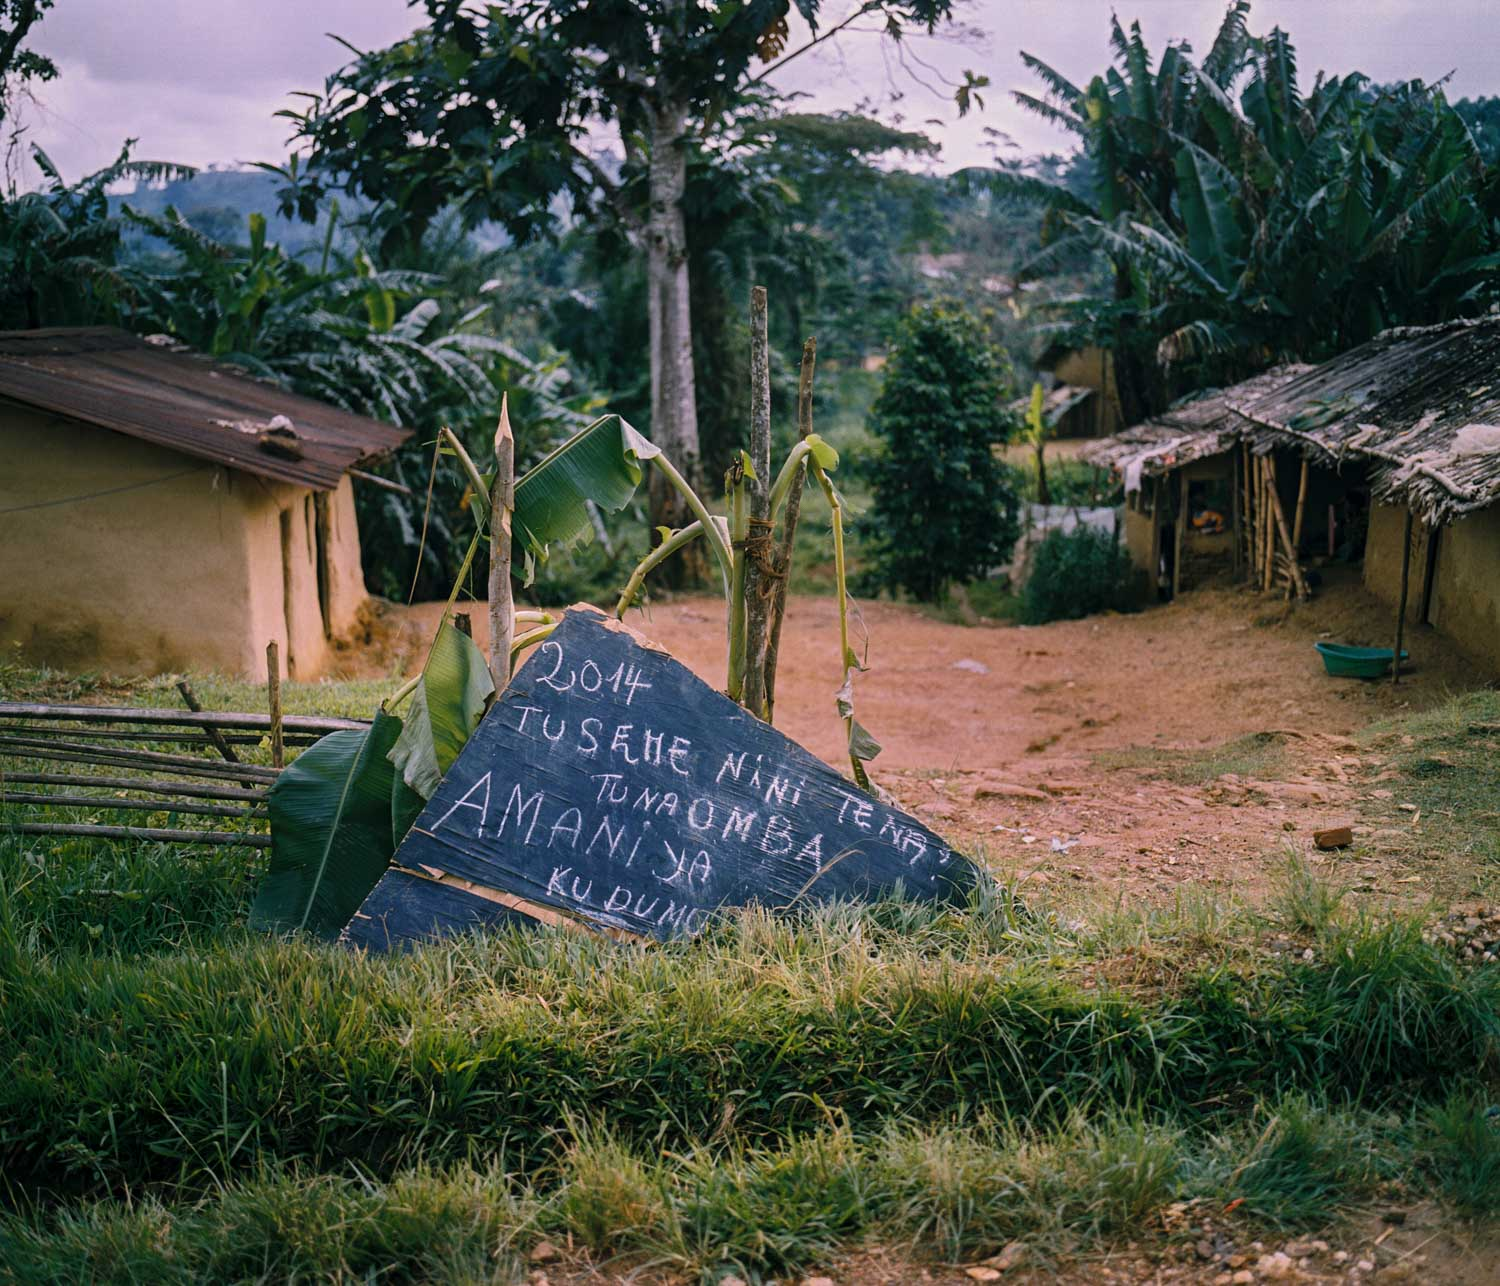 "On New Year's Eve, a roadside sign reads, ""2014, what shall we say again? We ask for lasting peace."" Dec. 31, 2013. Lulingu, South Kivu, Democratic Republic of the Congo."